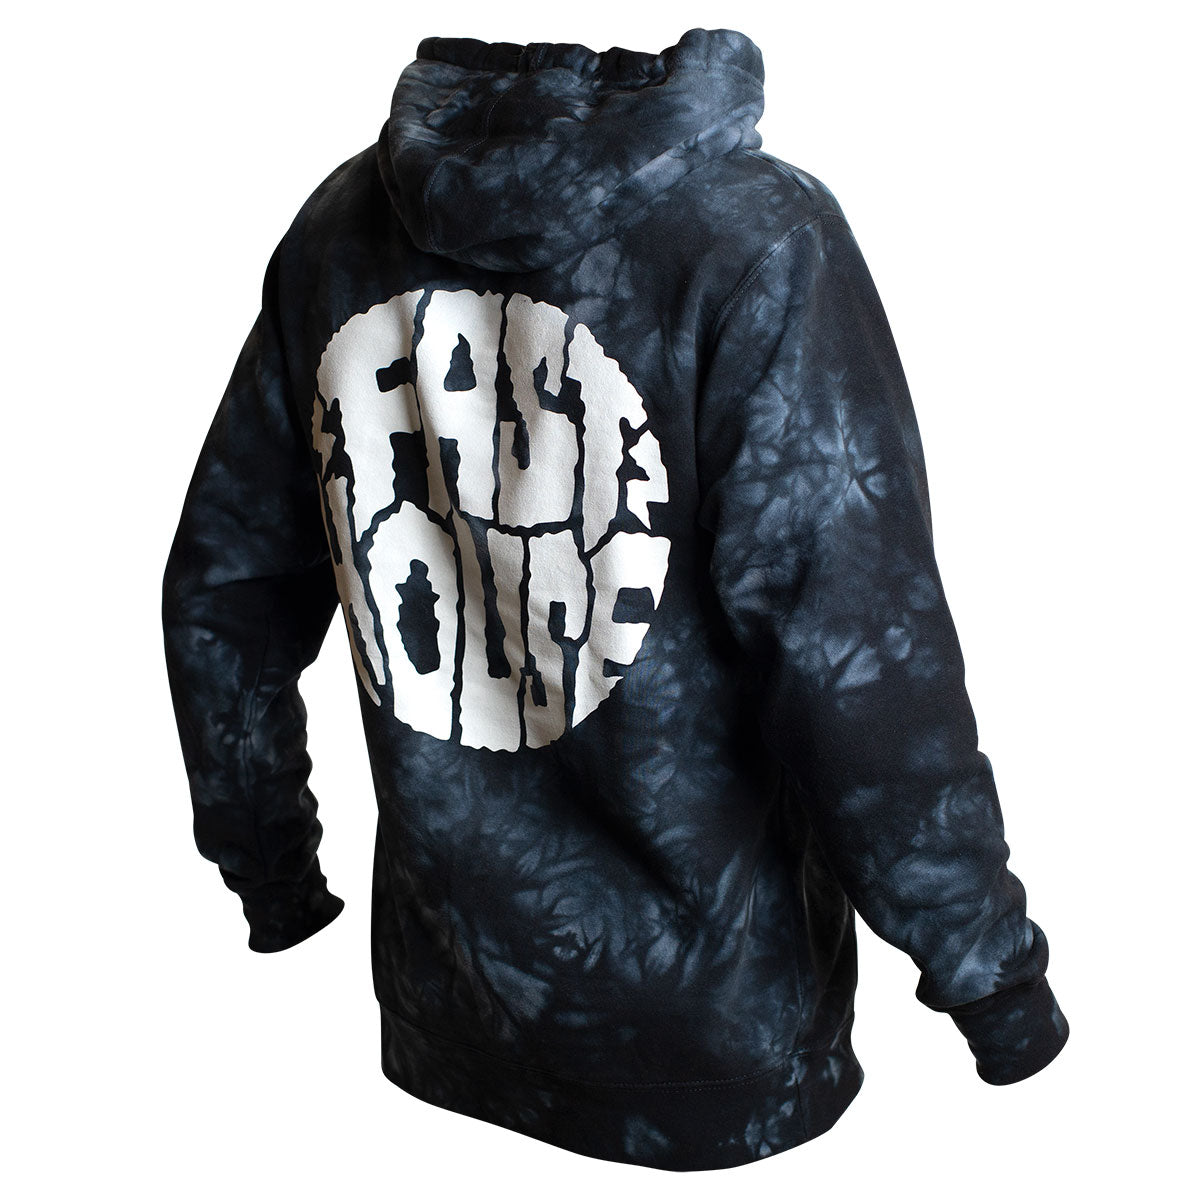 Grime Hooded Pullover - Tie Dye Black